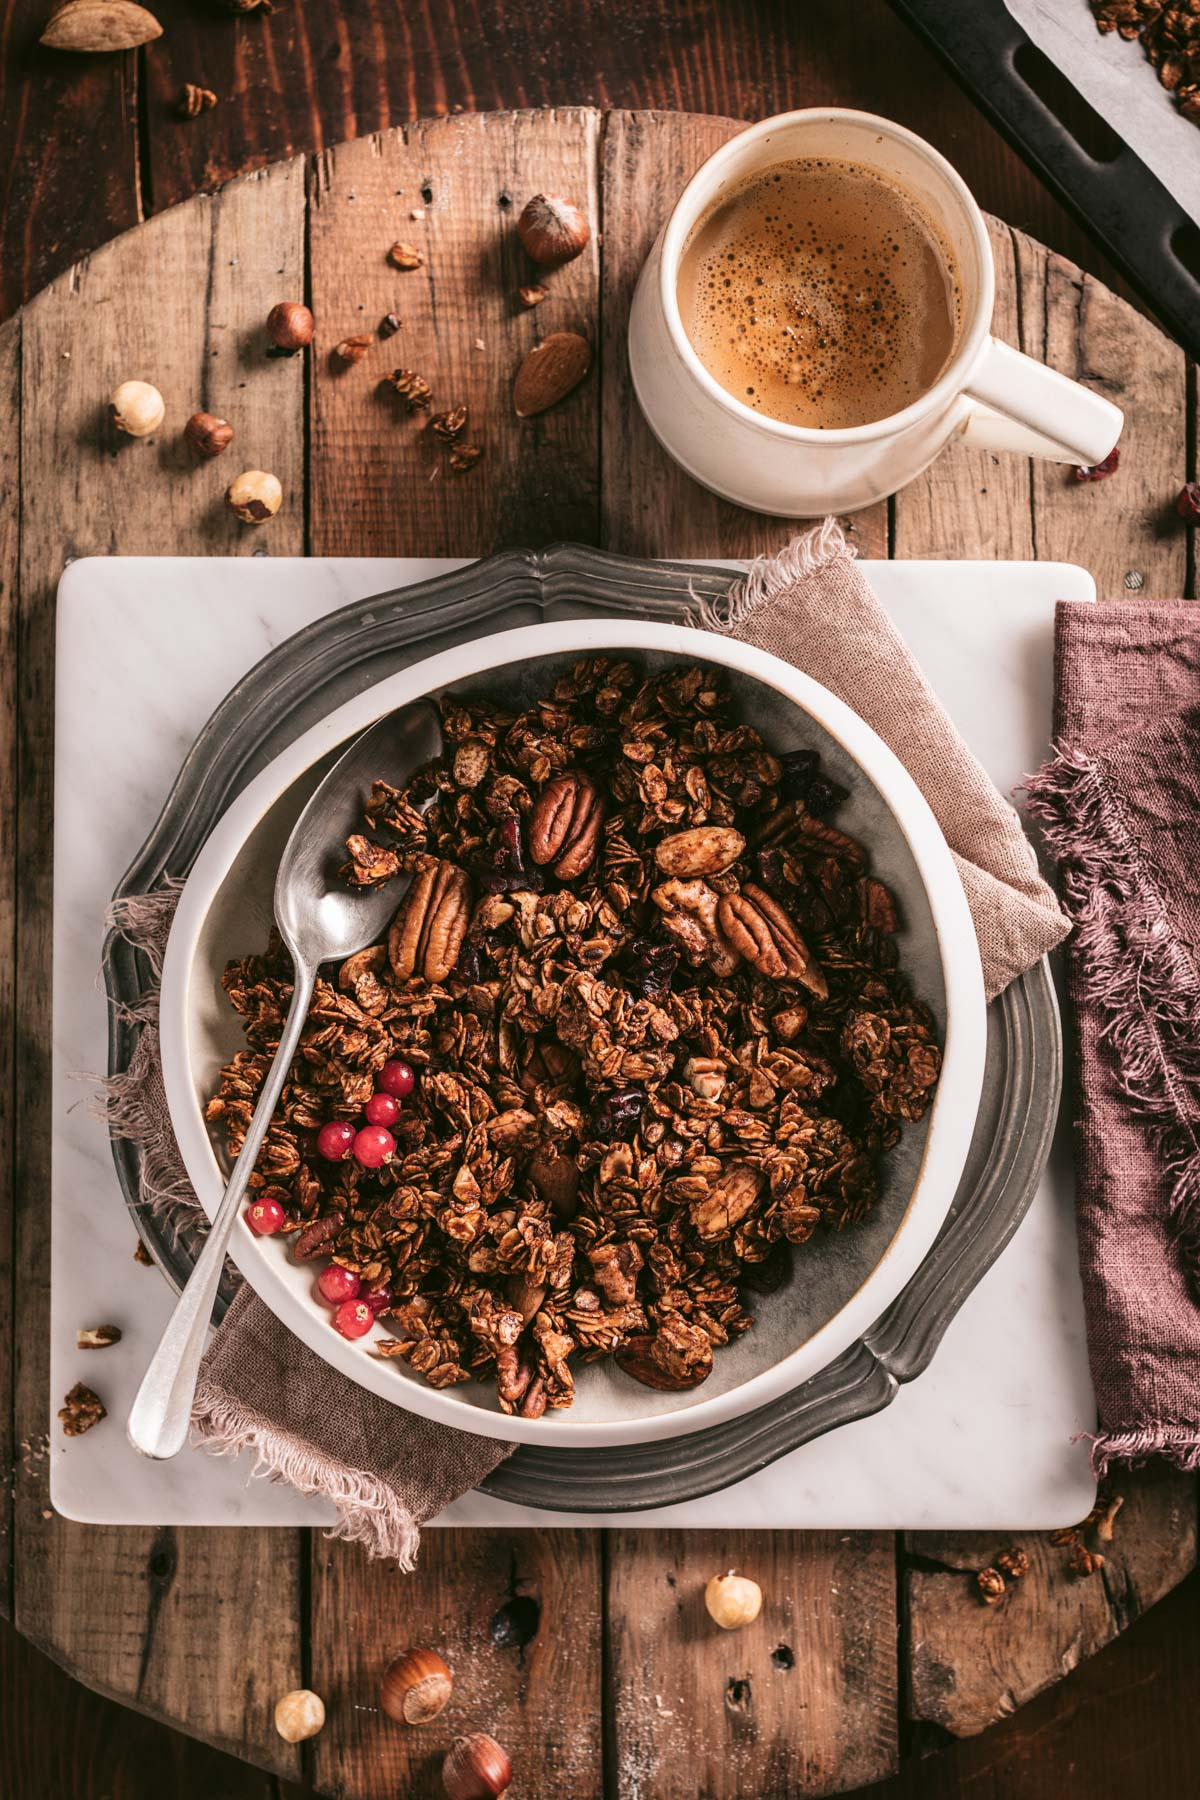 ricetta granola croccante cacao light facilissima the best vegan crunchy spiced nut granola clusters autumn granola recipe with oats buckwheat gluten-free